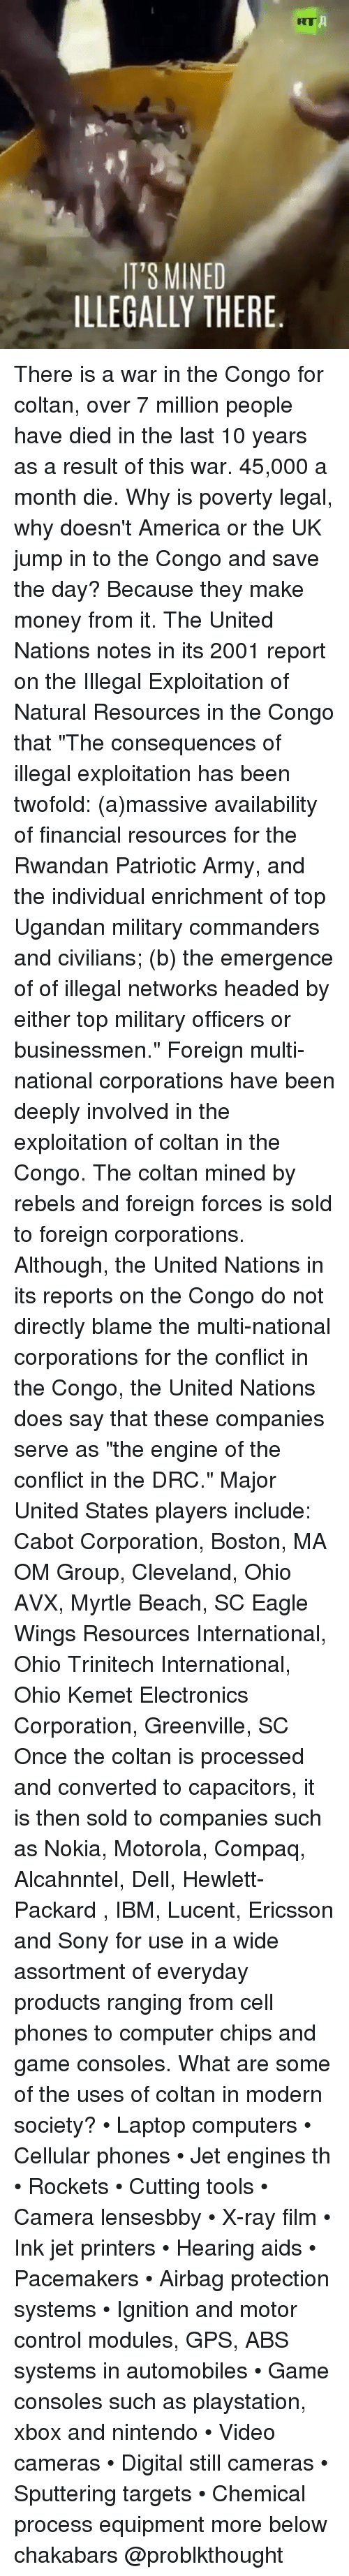 """ibm: KT  IT'S MINED  ILLEGALLY THERE. There is a war in the Congo for coltan, over 7 million people have died in the last 10 years as a result of this war. 45,000 a month die. Why is poverty legal, why doesn't America or the UK jump in to the Congo and save the day? Because they make money from it. The United Nations notes in its 2001 report on the Illegal Exploitation of Natural Resources in the Congo that """"The consequences of illegal exploitation has been twofold: (a)massive availability of financial resources for the Rwandan Patriotic Army, and the individual enrichment of top Ugandan military commanders and civilians; (b) the emergence of of illegal networks headed by either top military officers or businessmen."""" Foreign multi-national corporations have been deeply involved in the exploitation of coltan in the Congo. The coltan mined by rebels and foreign forces is sold to foreign corporations. Although, the United Nations in its reports on the Congo do not directly blame the multi-national corporations for the conflict in the Congo, the United Nations does say that these companies serve as """"the engine of the conflict in the DRC."""" Major United States players include: Cabot Corporation, Boston, MA OM Group, Cleveland, Ohio AVX, Myrtle Beach, SC Eagle Wings Resources International, Ohio Trinitech International, Ohio Kemet Electronics Corporation, Greenville, SC Once the coltan is processed and converted to capacitors, it is then sold to companies such as Nokia, Motorola, Compaq, Alcahnntel, Dell, Hewlett-Packard , IBM, Lucent, Ericsson and Sony for use in a wide assortment of everyday products ranging from cell phones to computer chips and game consoles. What are some of the uses of coltan in modern society? • Laptop computers • Cellular phones • Jet engines th • Rockets • Cutting tools • Camera lensesbby • X-ray film • Ink jet printers • Hearing aids • Pacemakers • Airbag protection systems • Ignition and motor control modules, GPS, ABS systems in automobiles • G"""